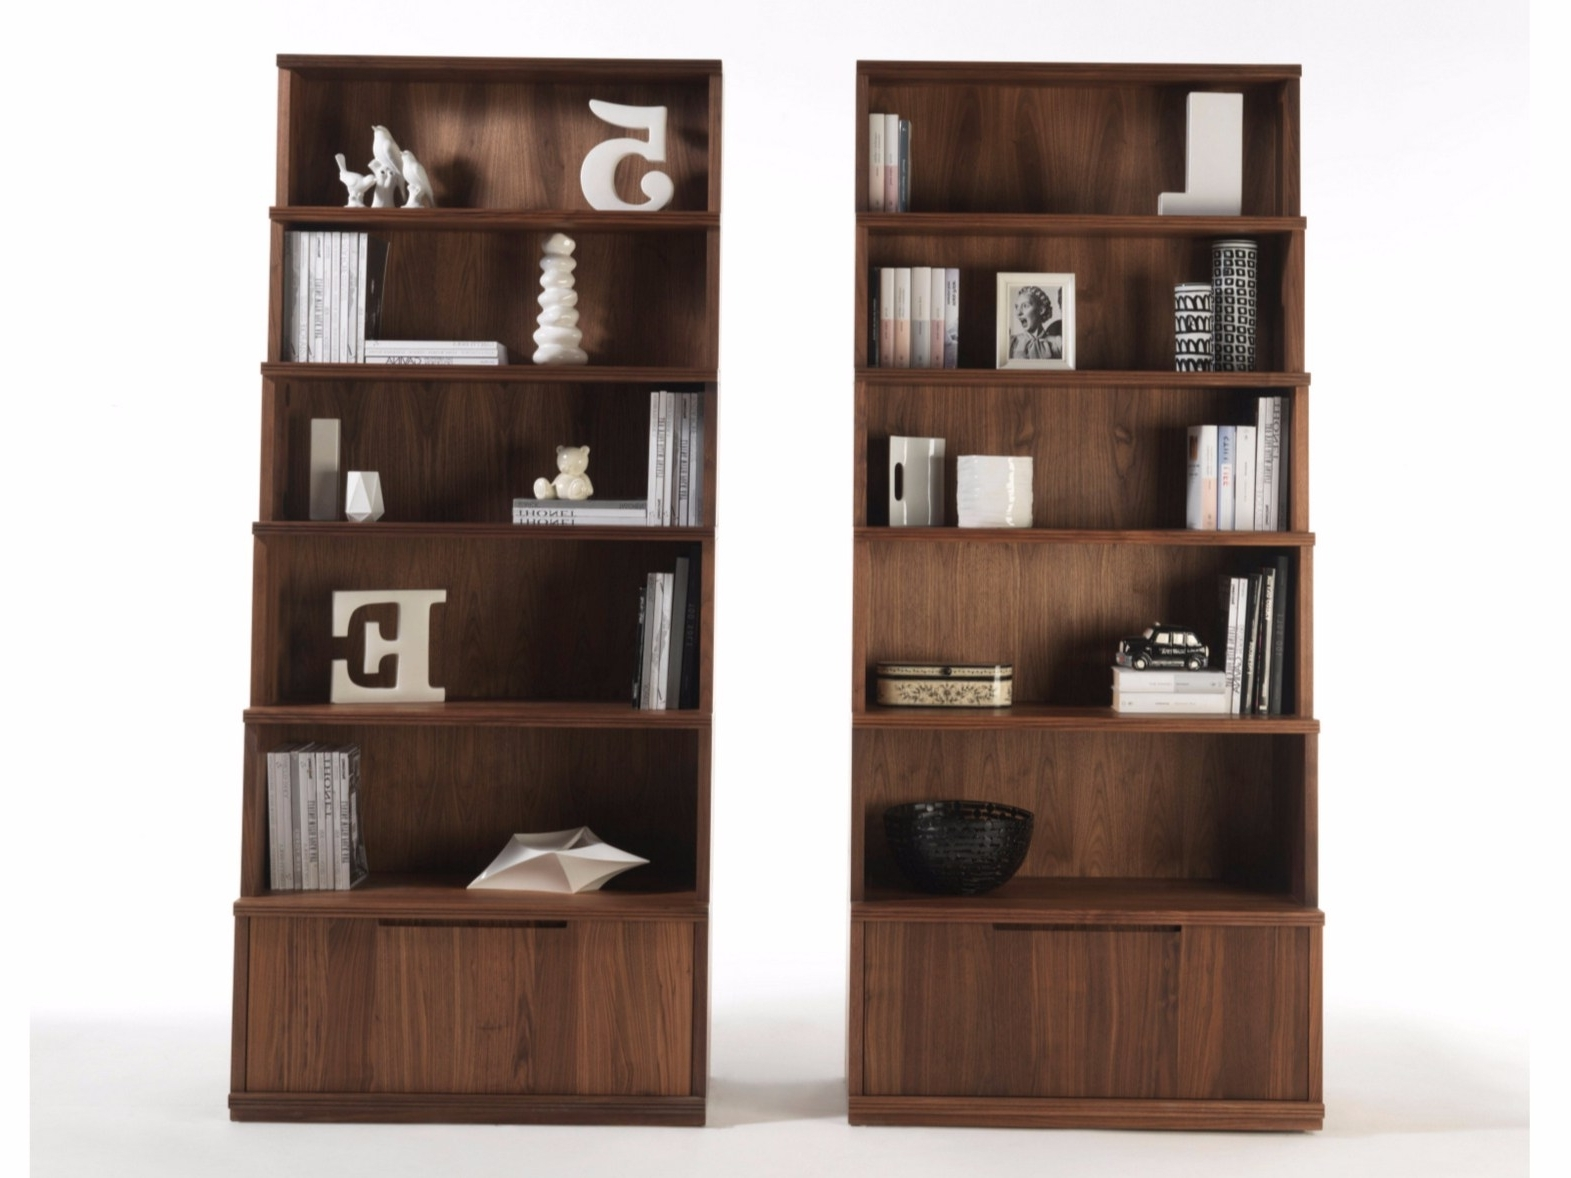 Bookcase 40 Literarywondrous Dark Wood Photos Design Bookcases With Regard To 2017 Bookcases With Bottom Cabinets (View 2 of 15)